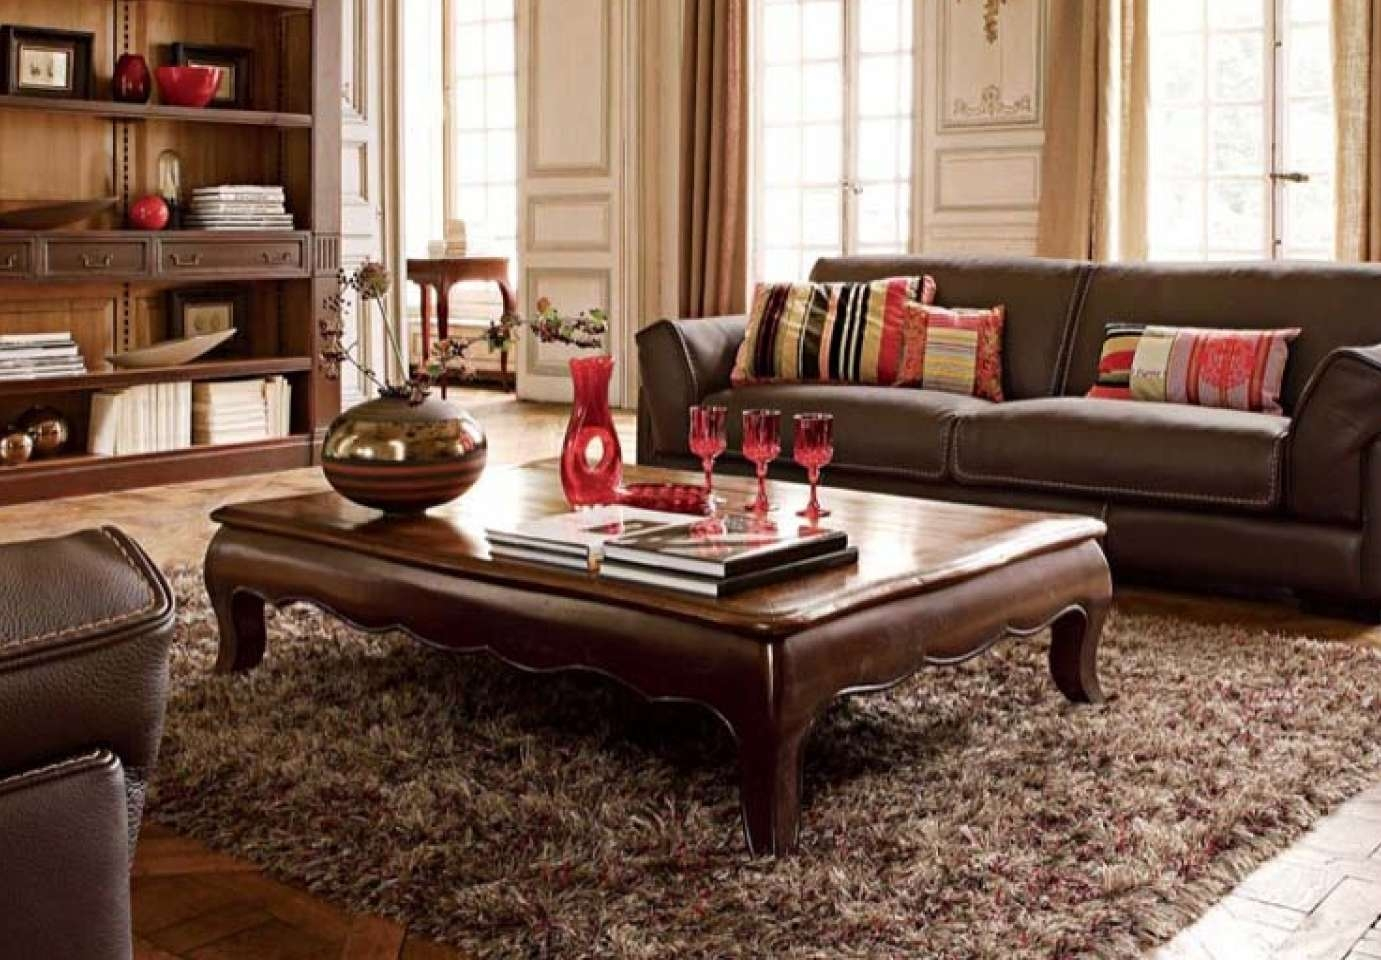 2017 Big Coffee Tables Throughout Coffee Table, Coffee Tables Coffee Side Tables The Cool Wood (View 10 of 20)